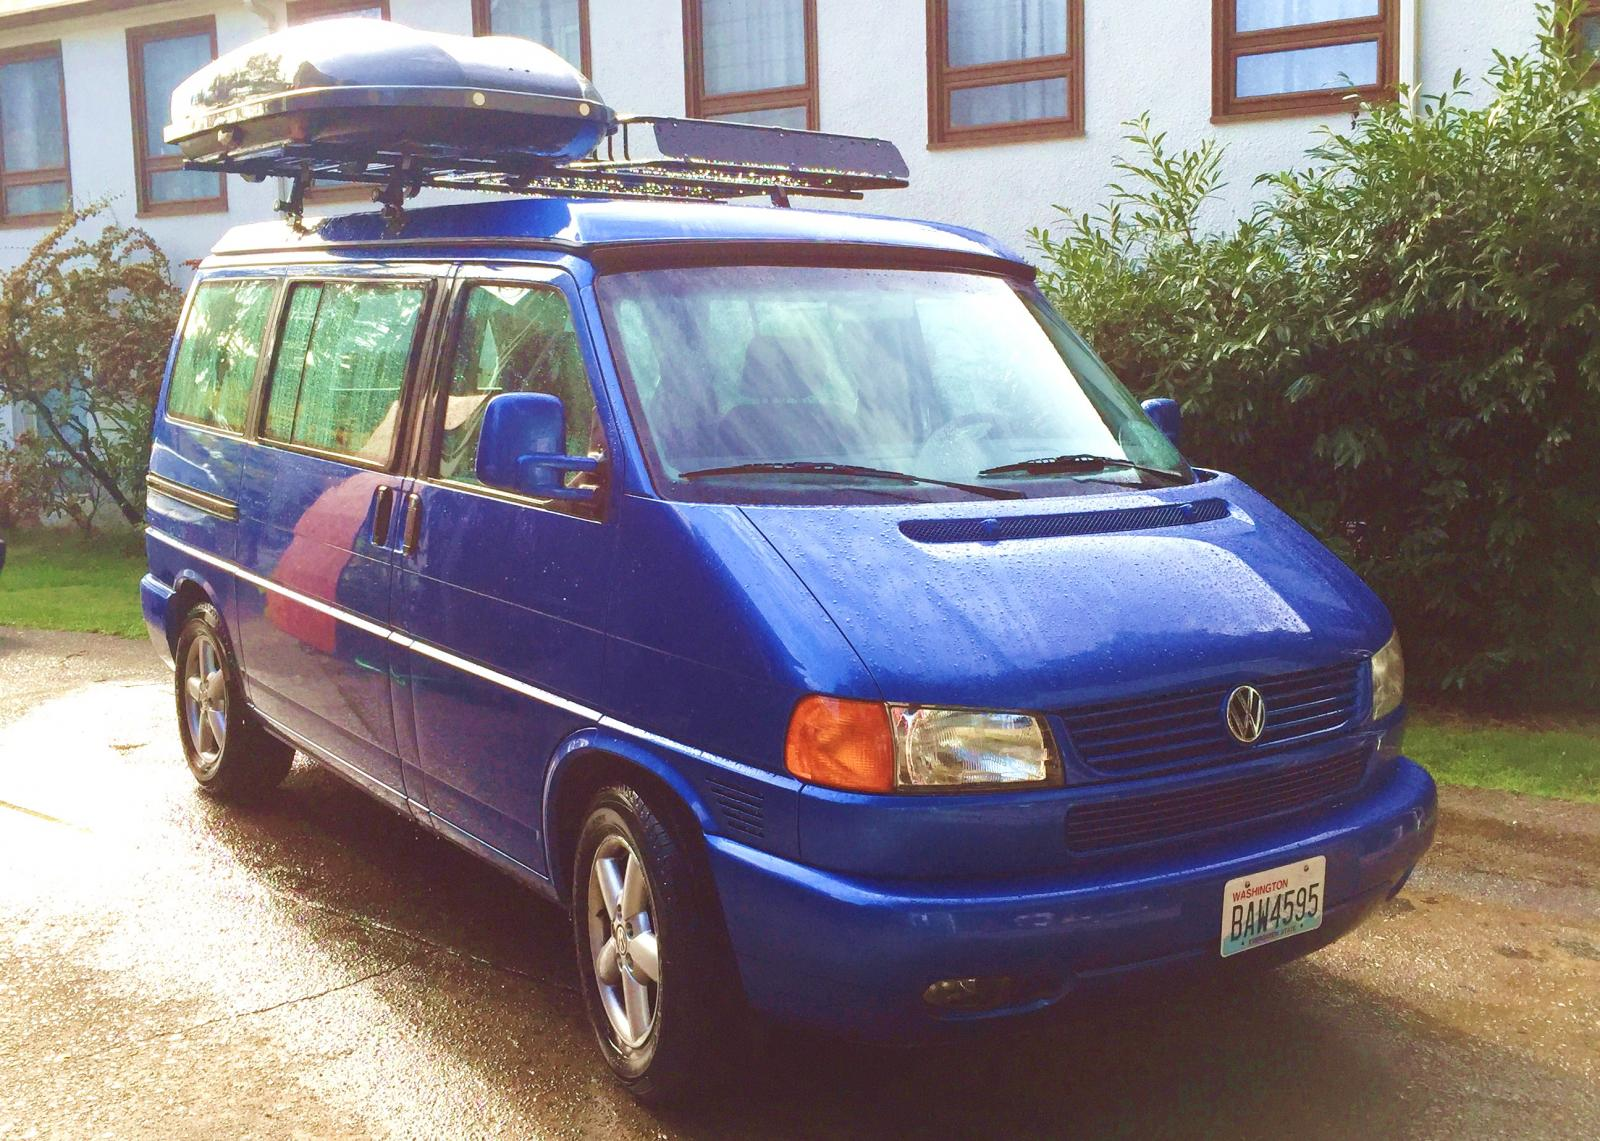 transporter my rack racks volkswagen style oval open with roof ended steel vehicle vw find